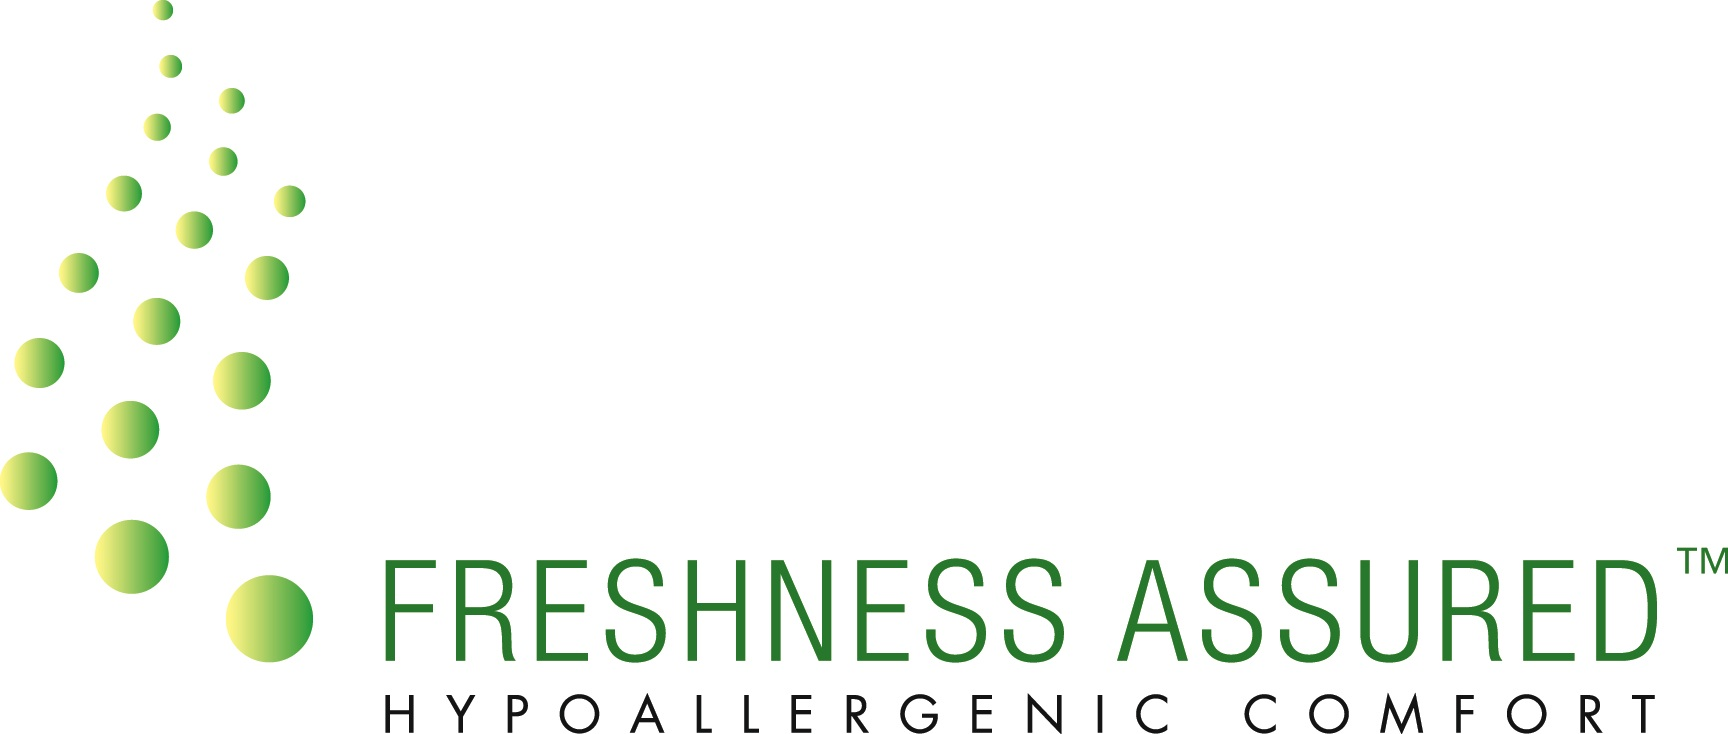 down and feather pioneer unveils new freshness assured logo